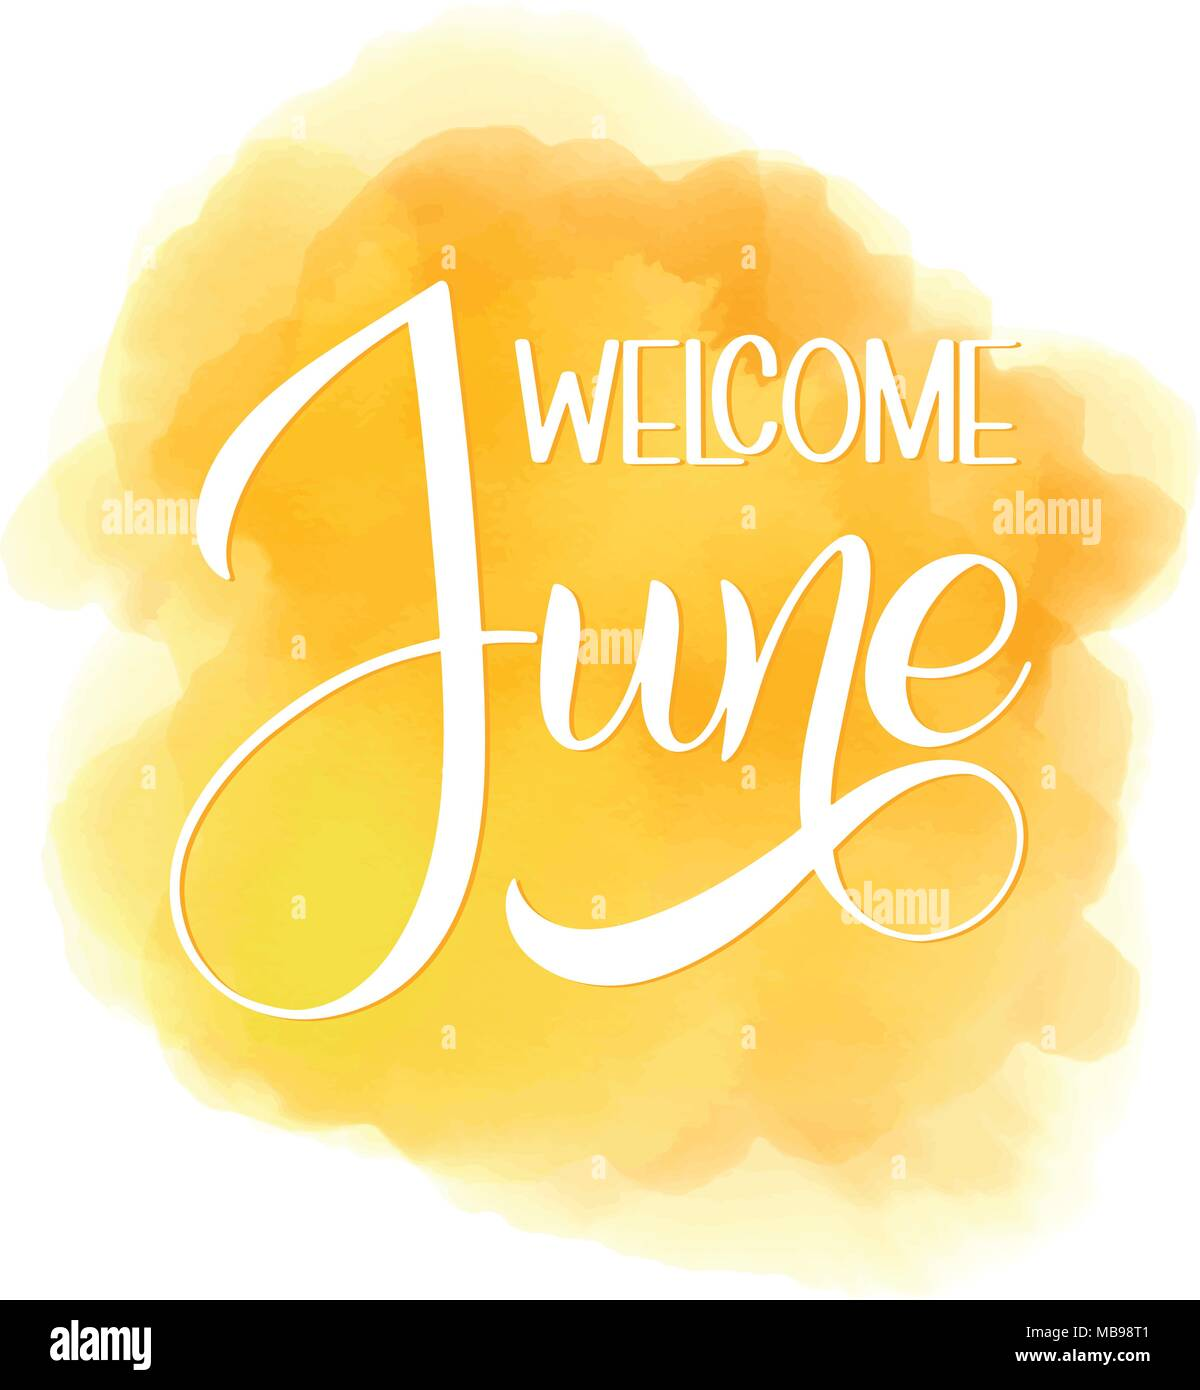 Welcome june lettering elements for invitations posters greeting welcome june lettering elements for invitations posters greeting cards seasons greetings m4hsunfo